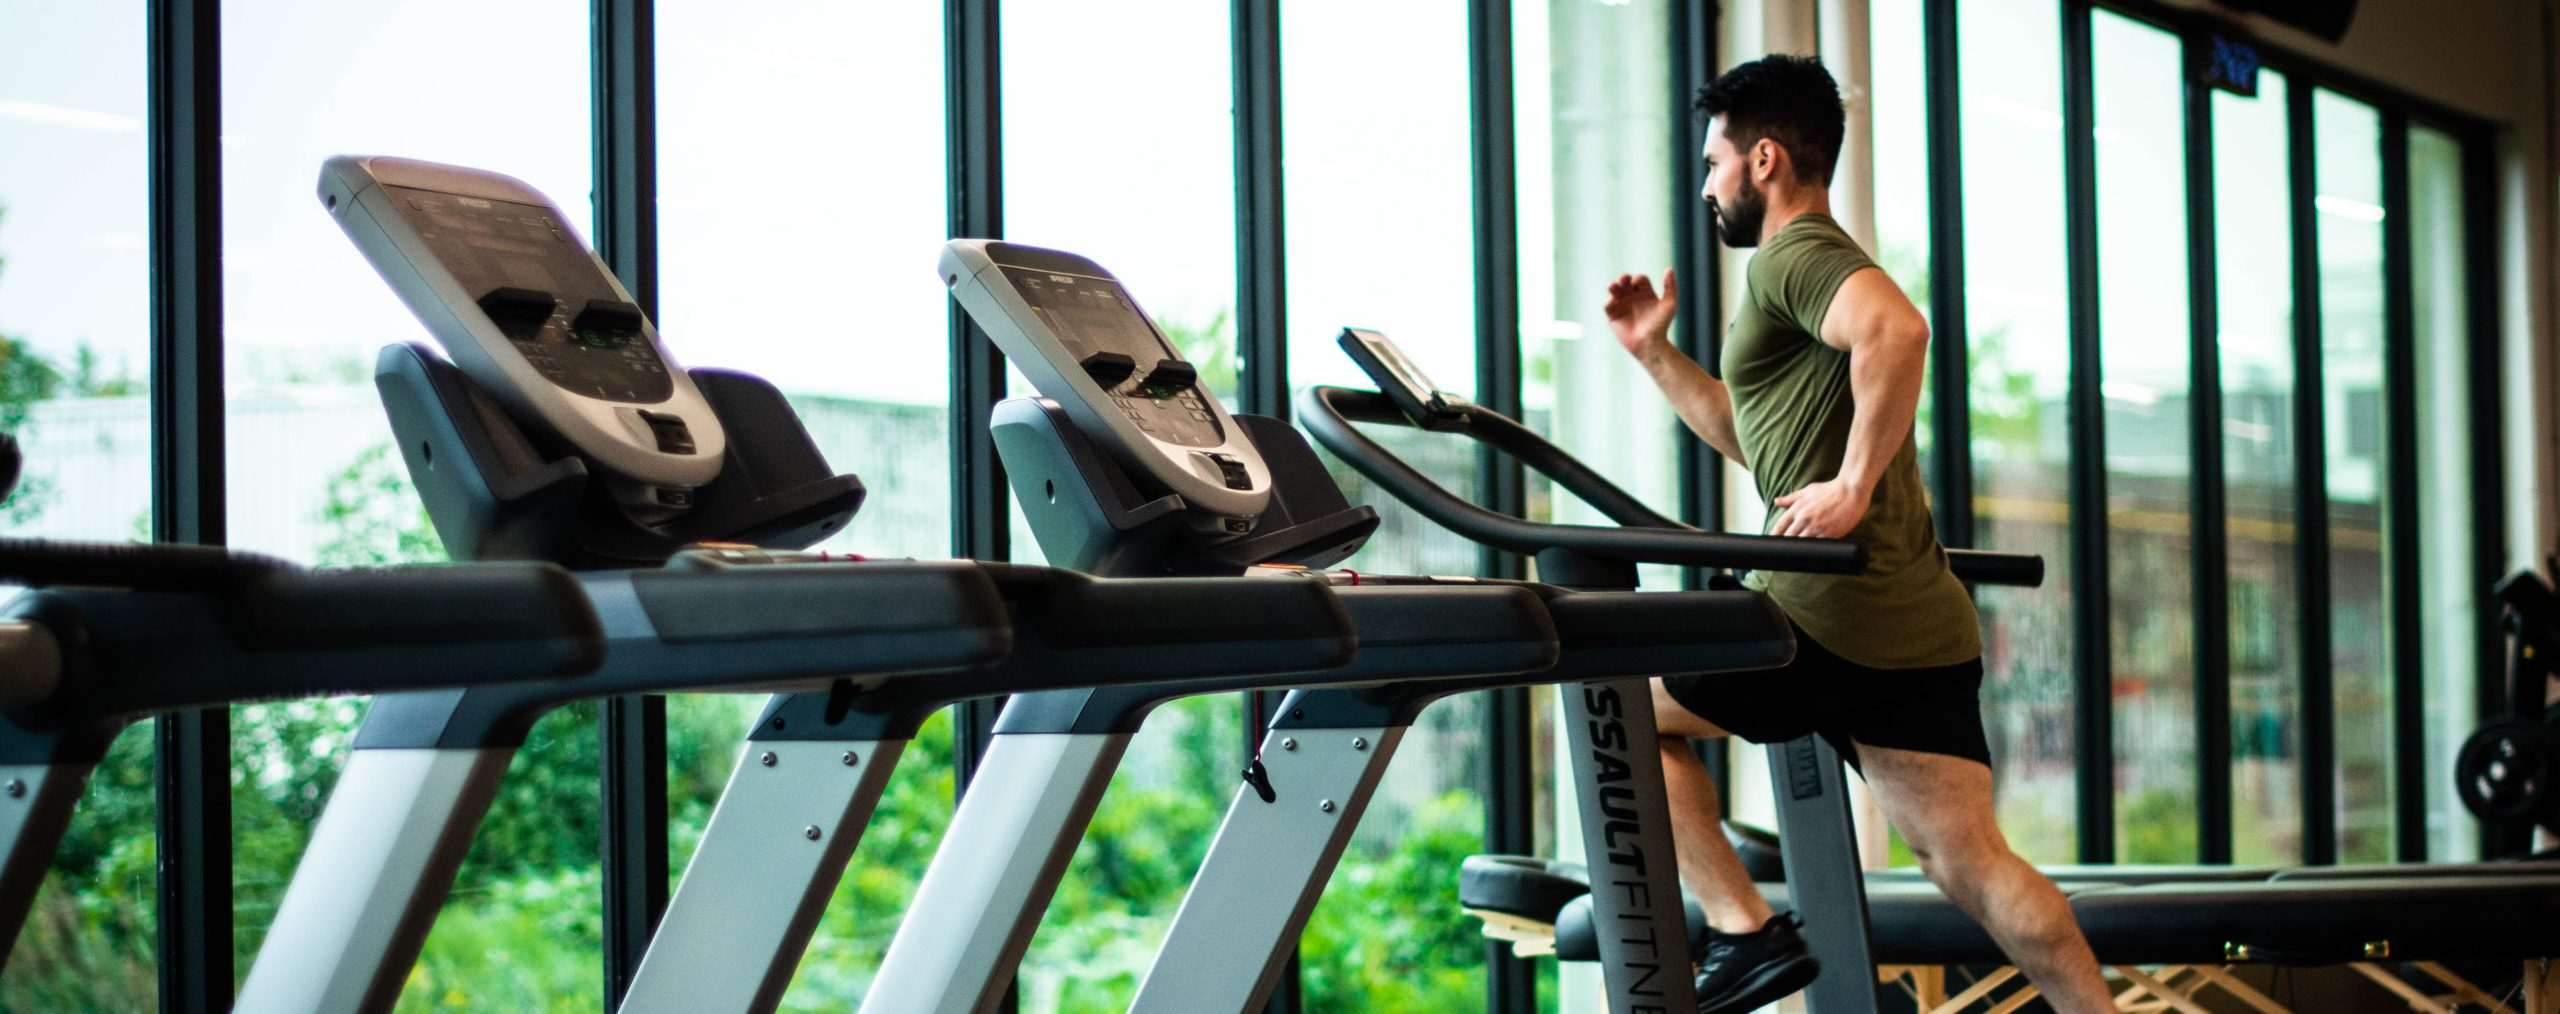 Natural Insomnia Remedies for Men - man on treadmill